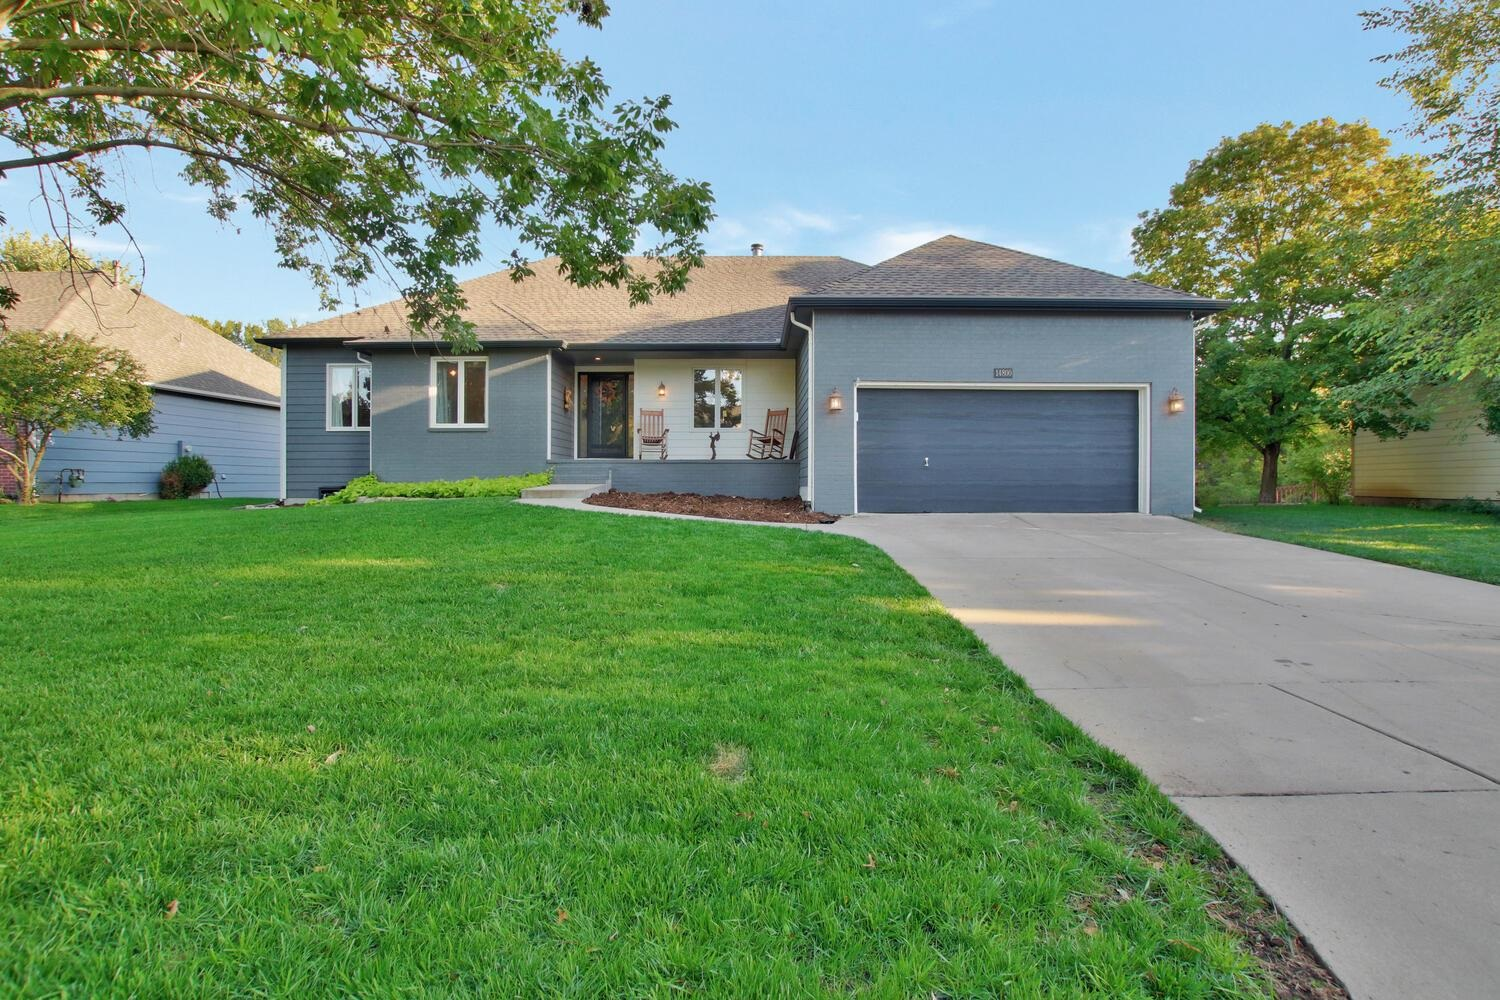 Immaculate home in a great neighborhood on a large lot with wooded creek view! This move-in ready pr